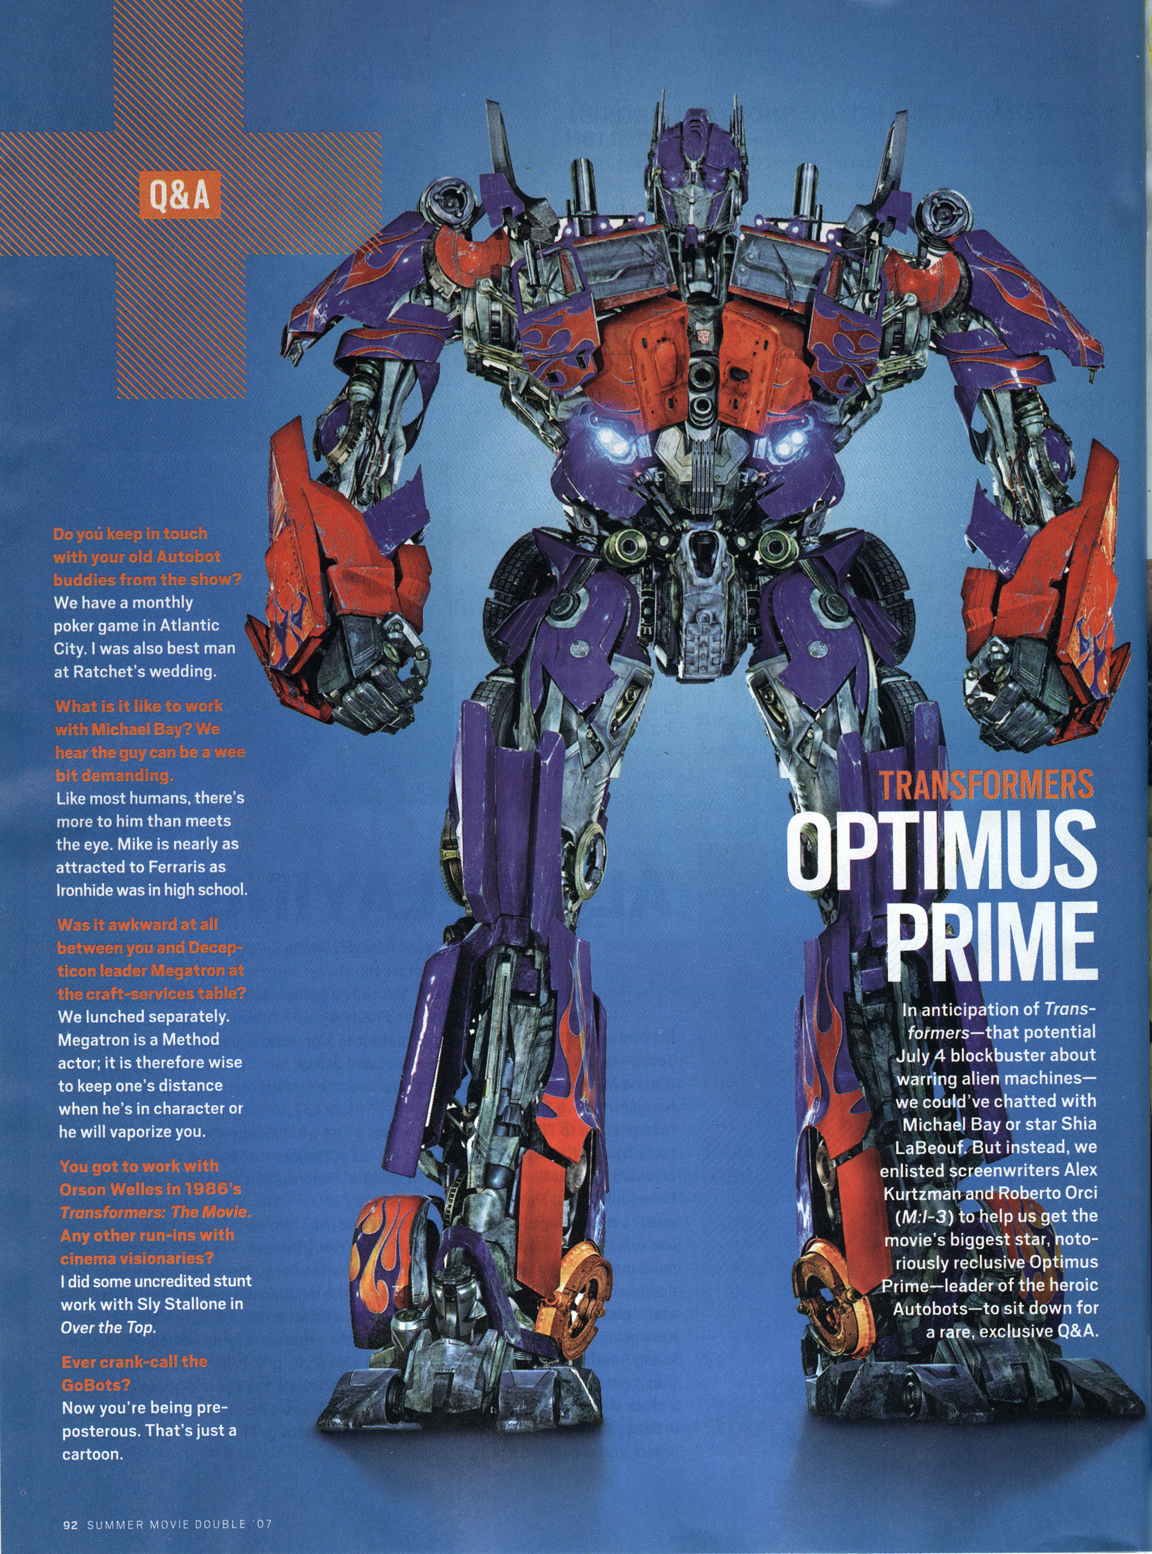 To the movie prime